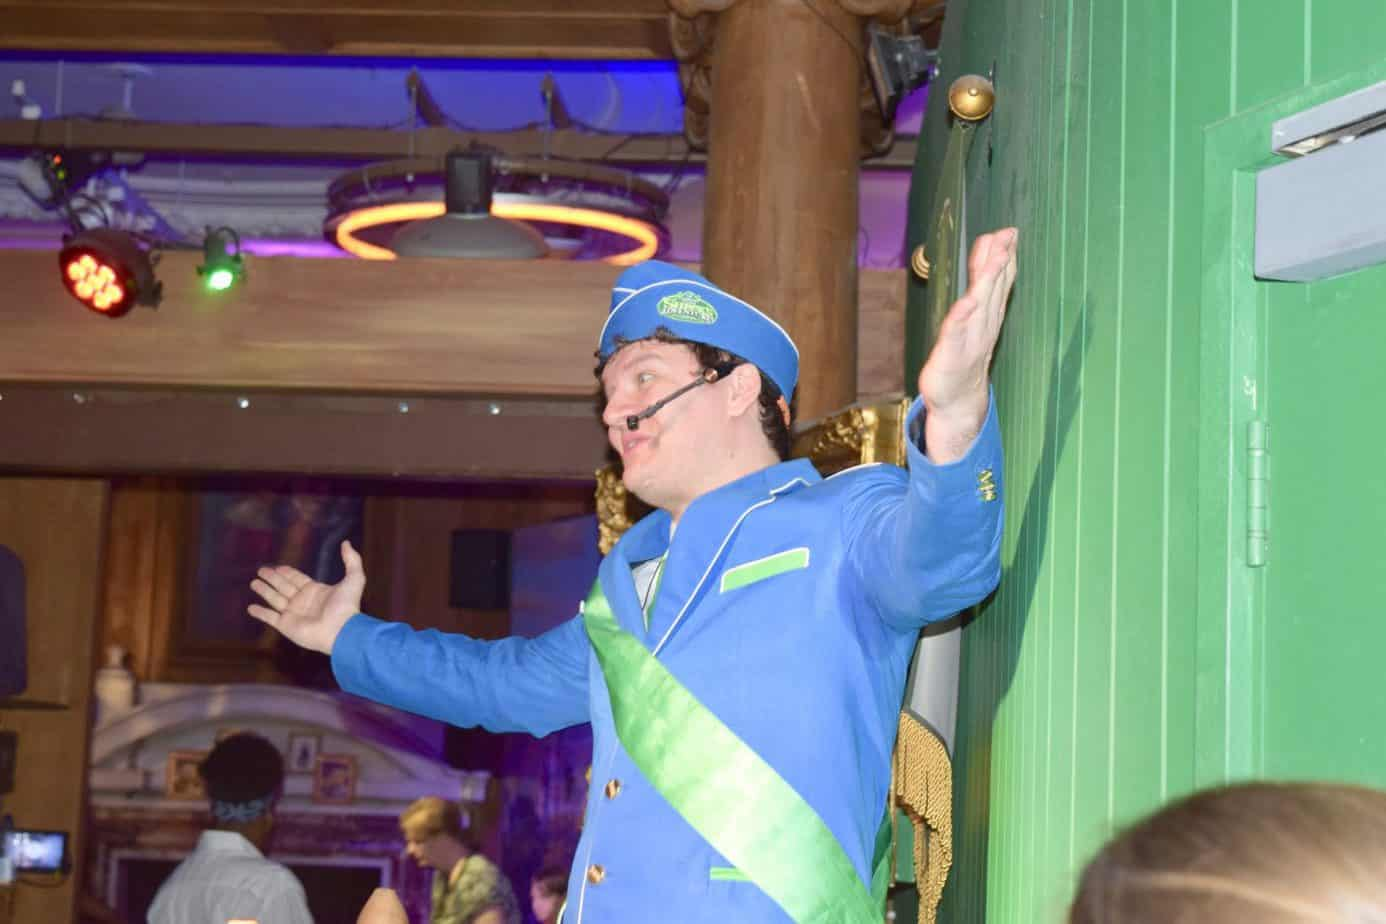 A staff member seating an air steward outfit wishing us on to our Shrek's Adventure tour